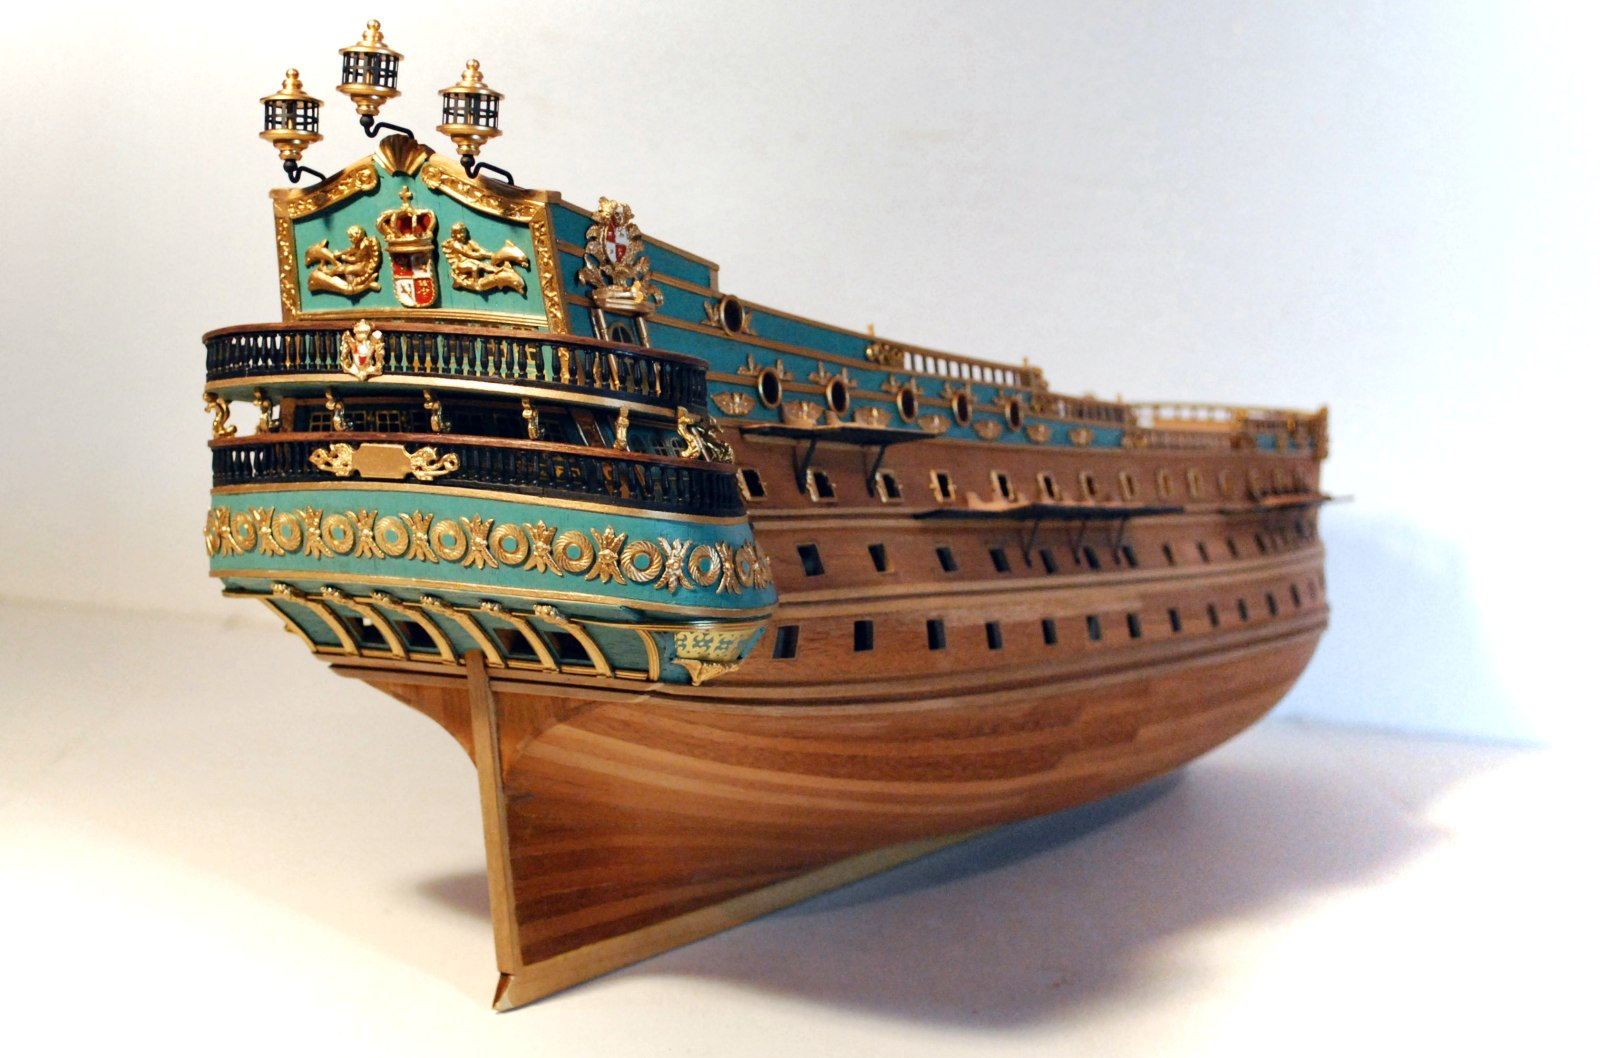 Fine Tallship Models from The Art of Age of Sail - Page 2.